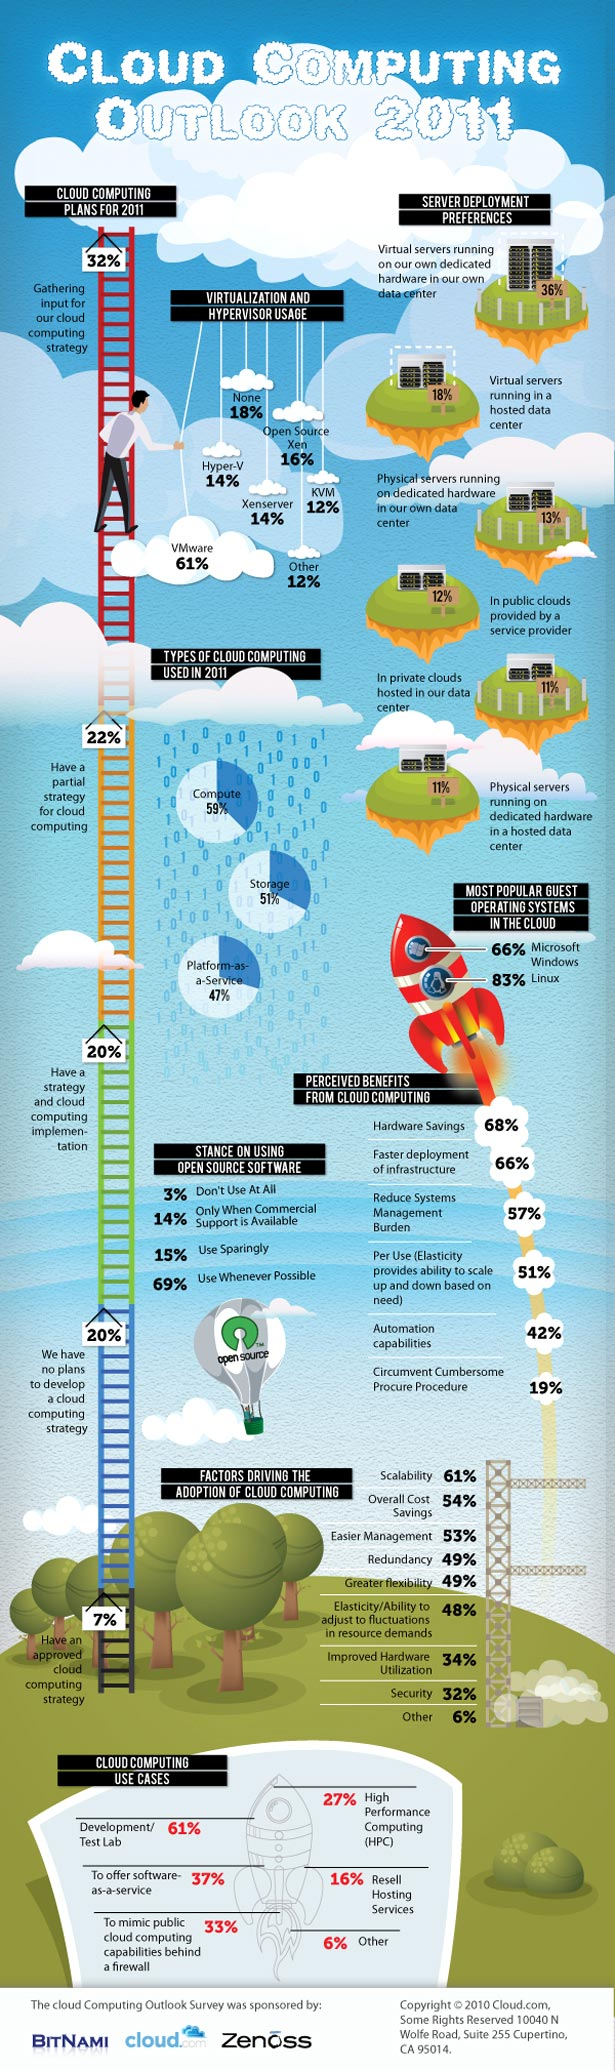 cloud computing outlook 2011